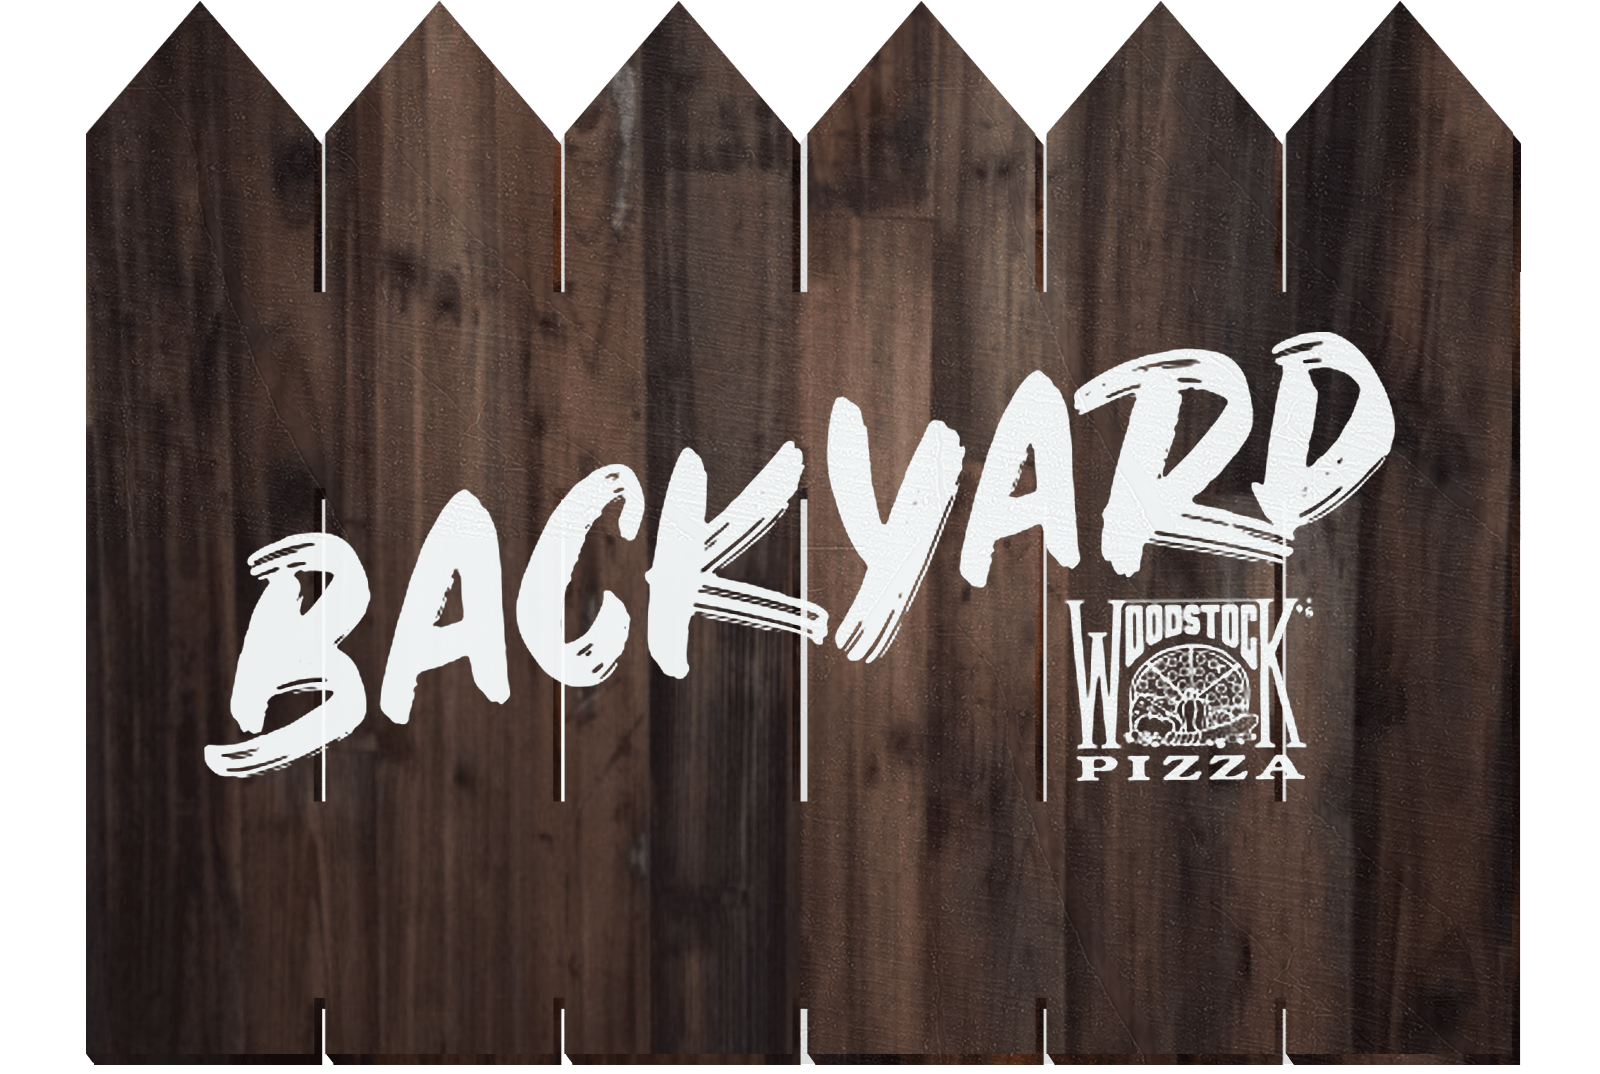 backyardmockup_finalround_whitetextonfence-min